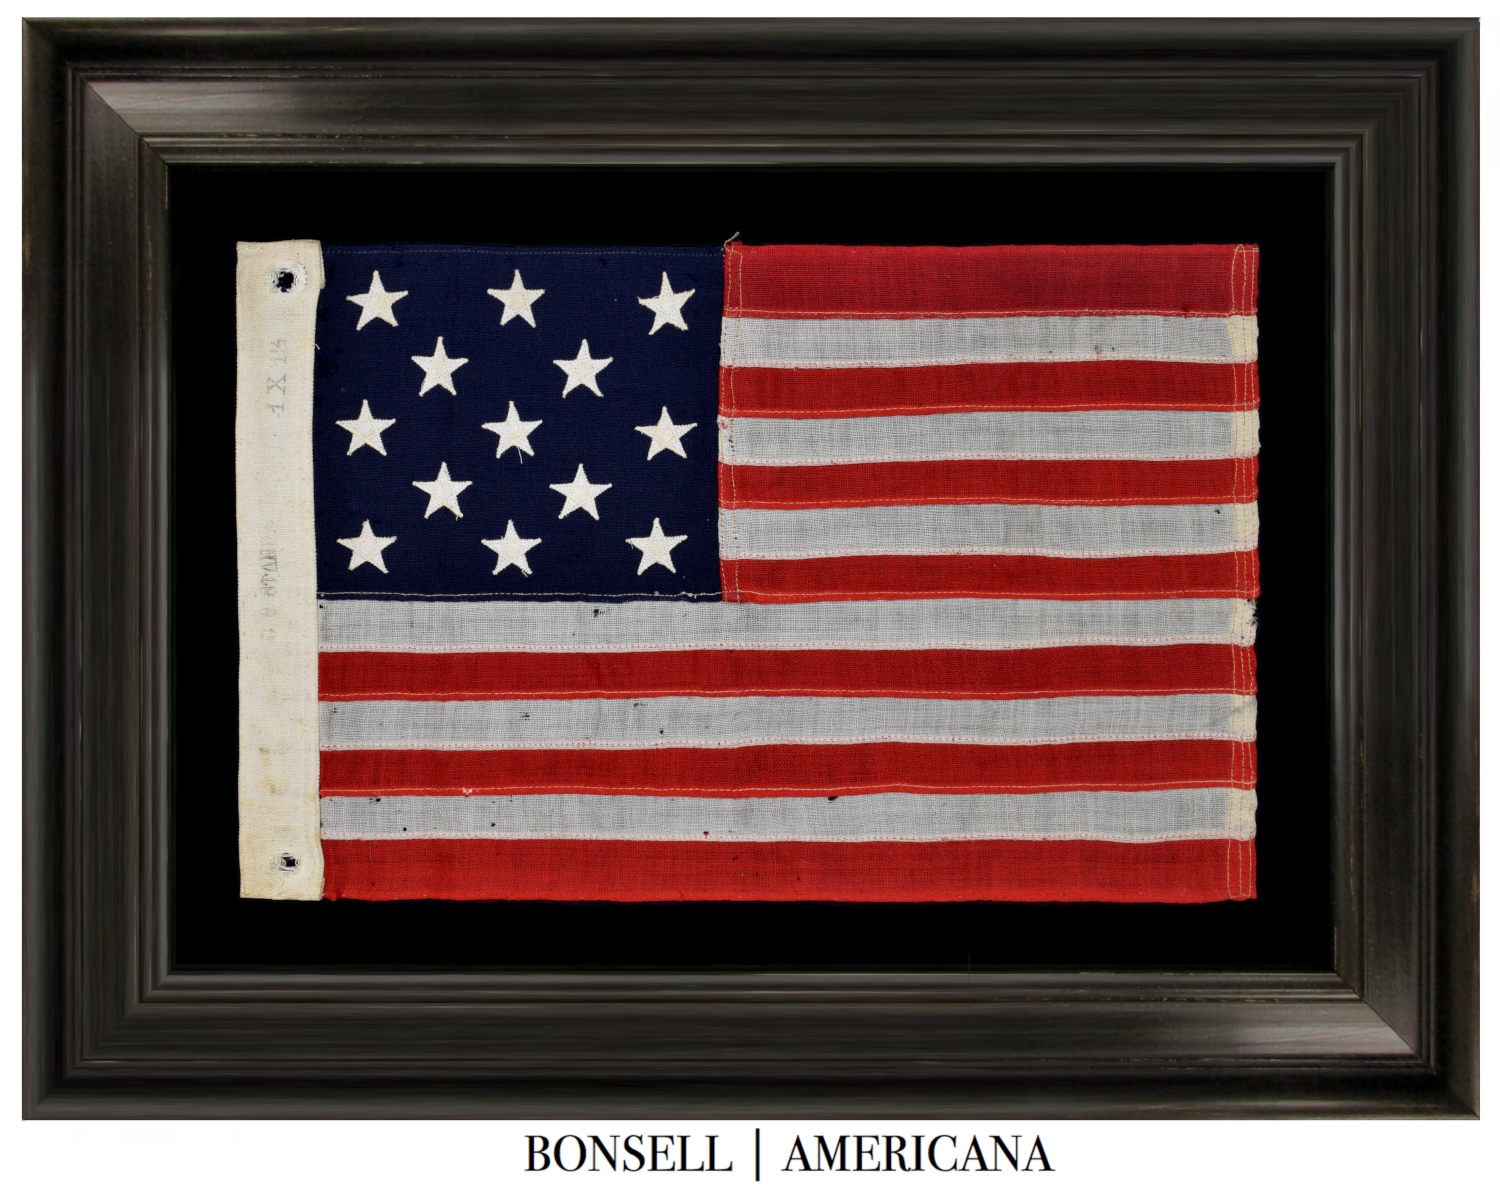 13 Star Antique Flag with a 3-2-3-2-3 Pattern